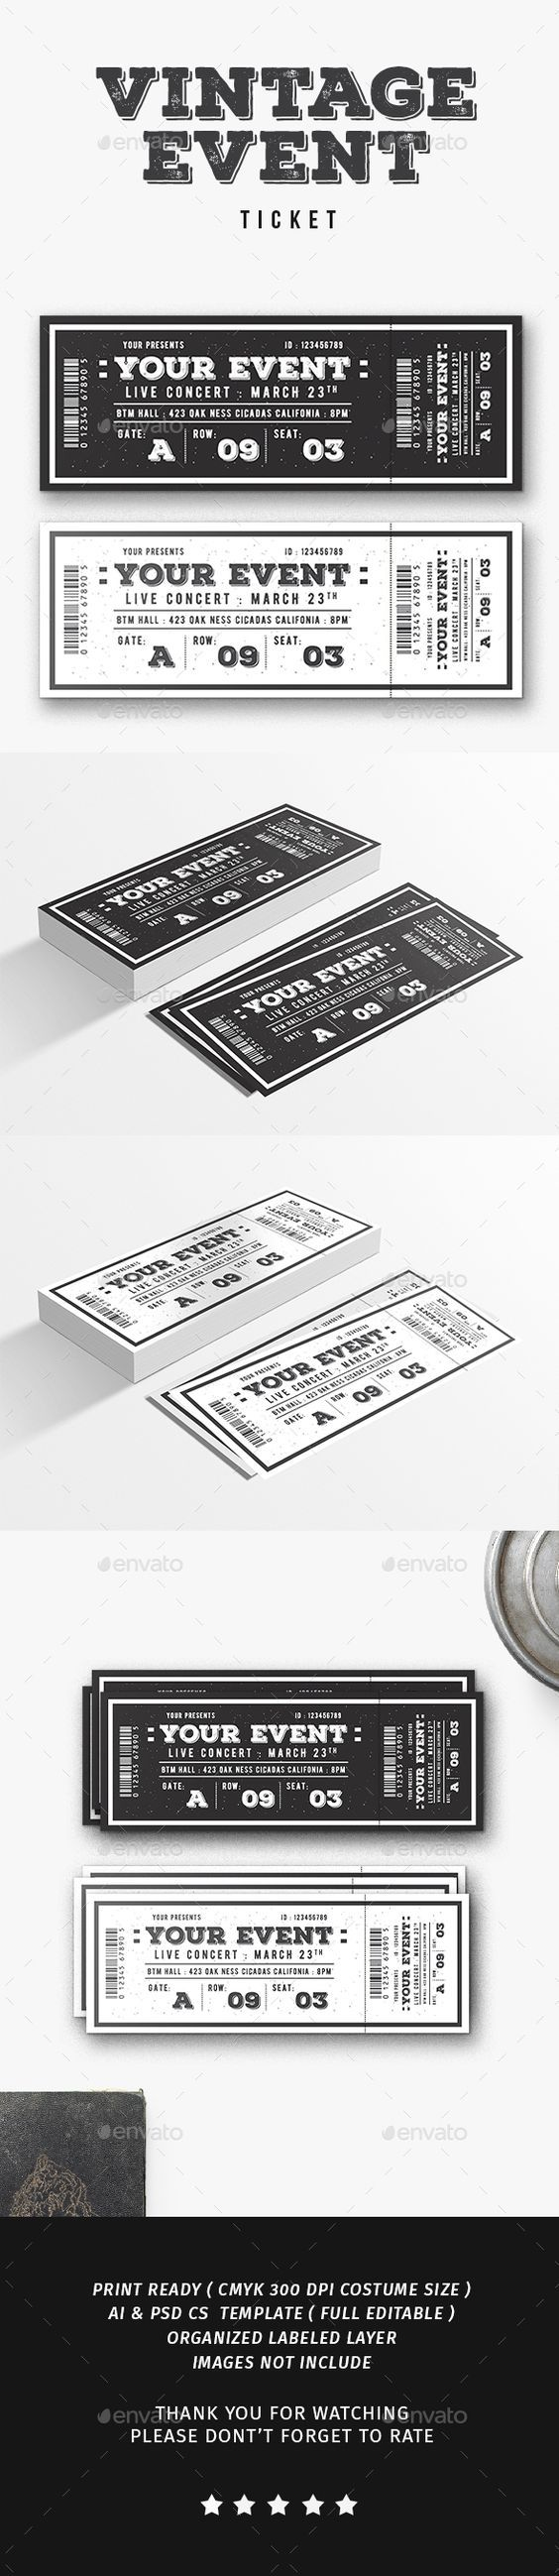 Concert Ticket Template Free Download Beauteous Vintage Event Ticket  Event Ticket